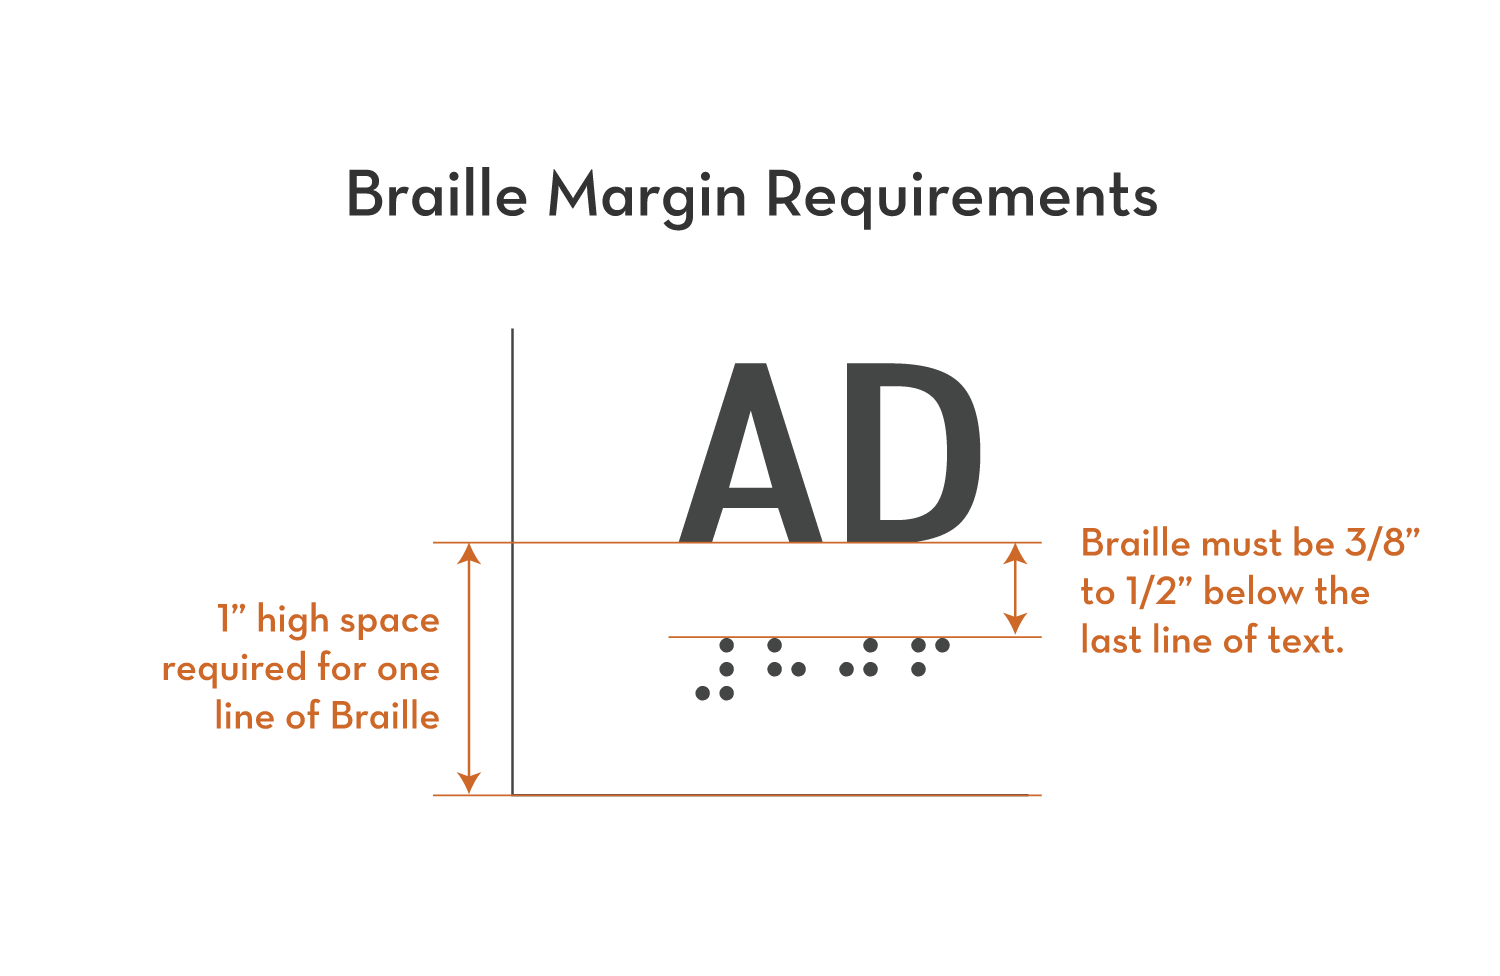 Braille Margin Requirements for ADA Signage